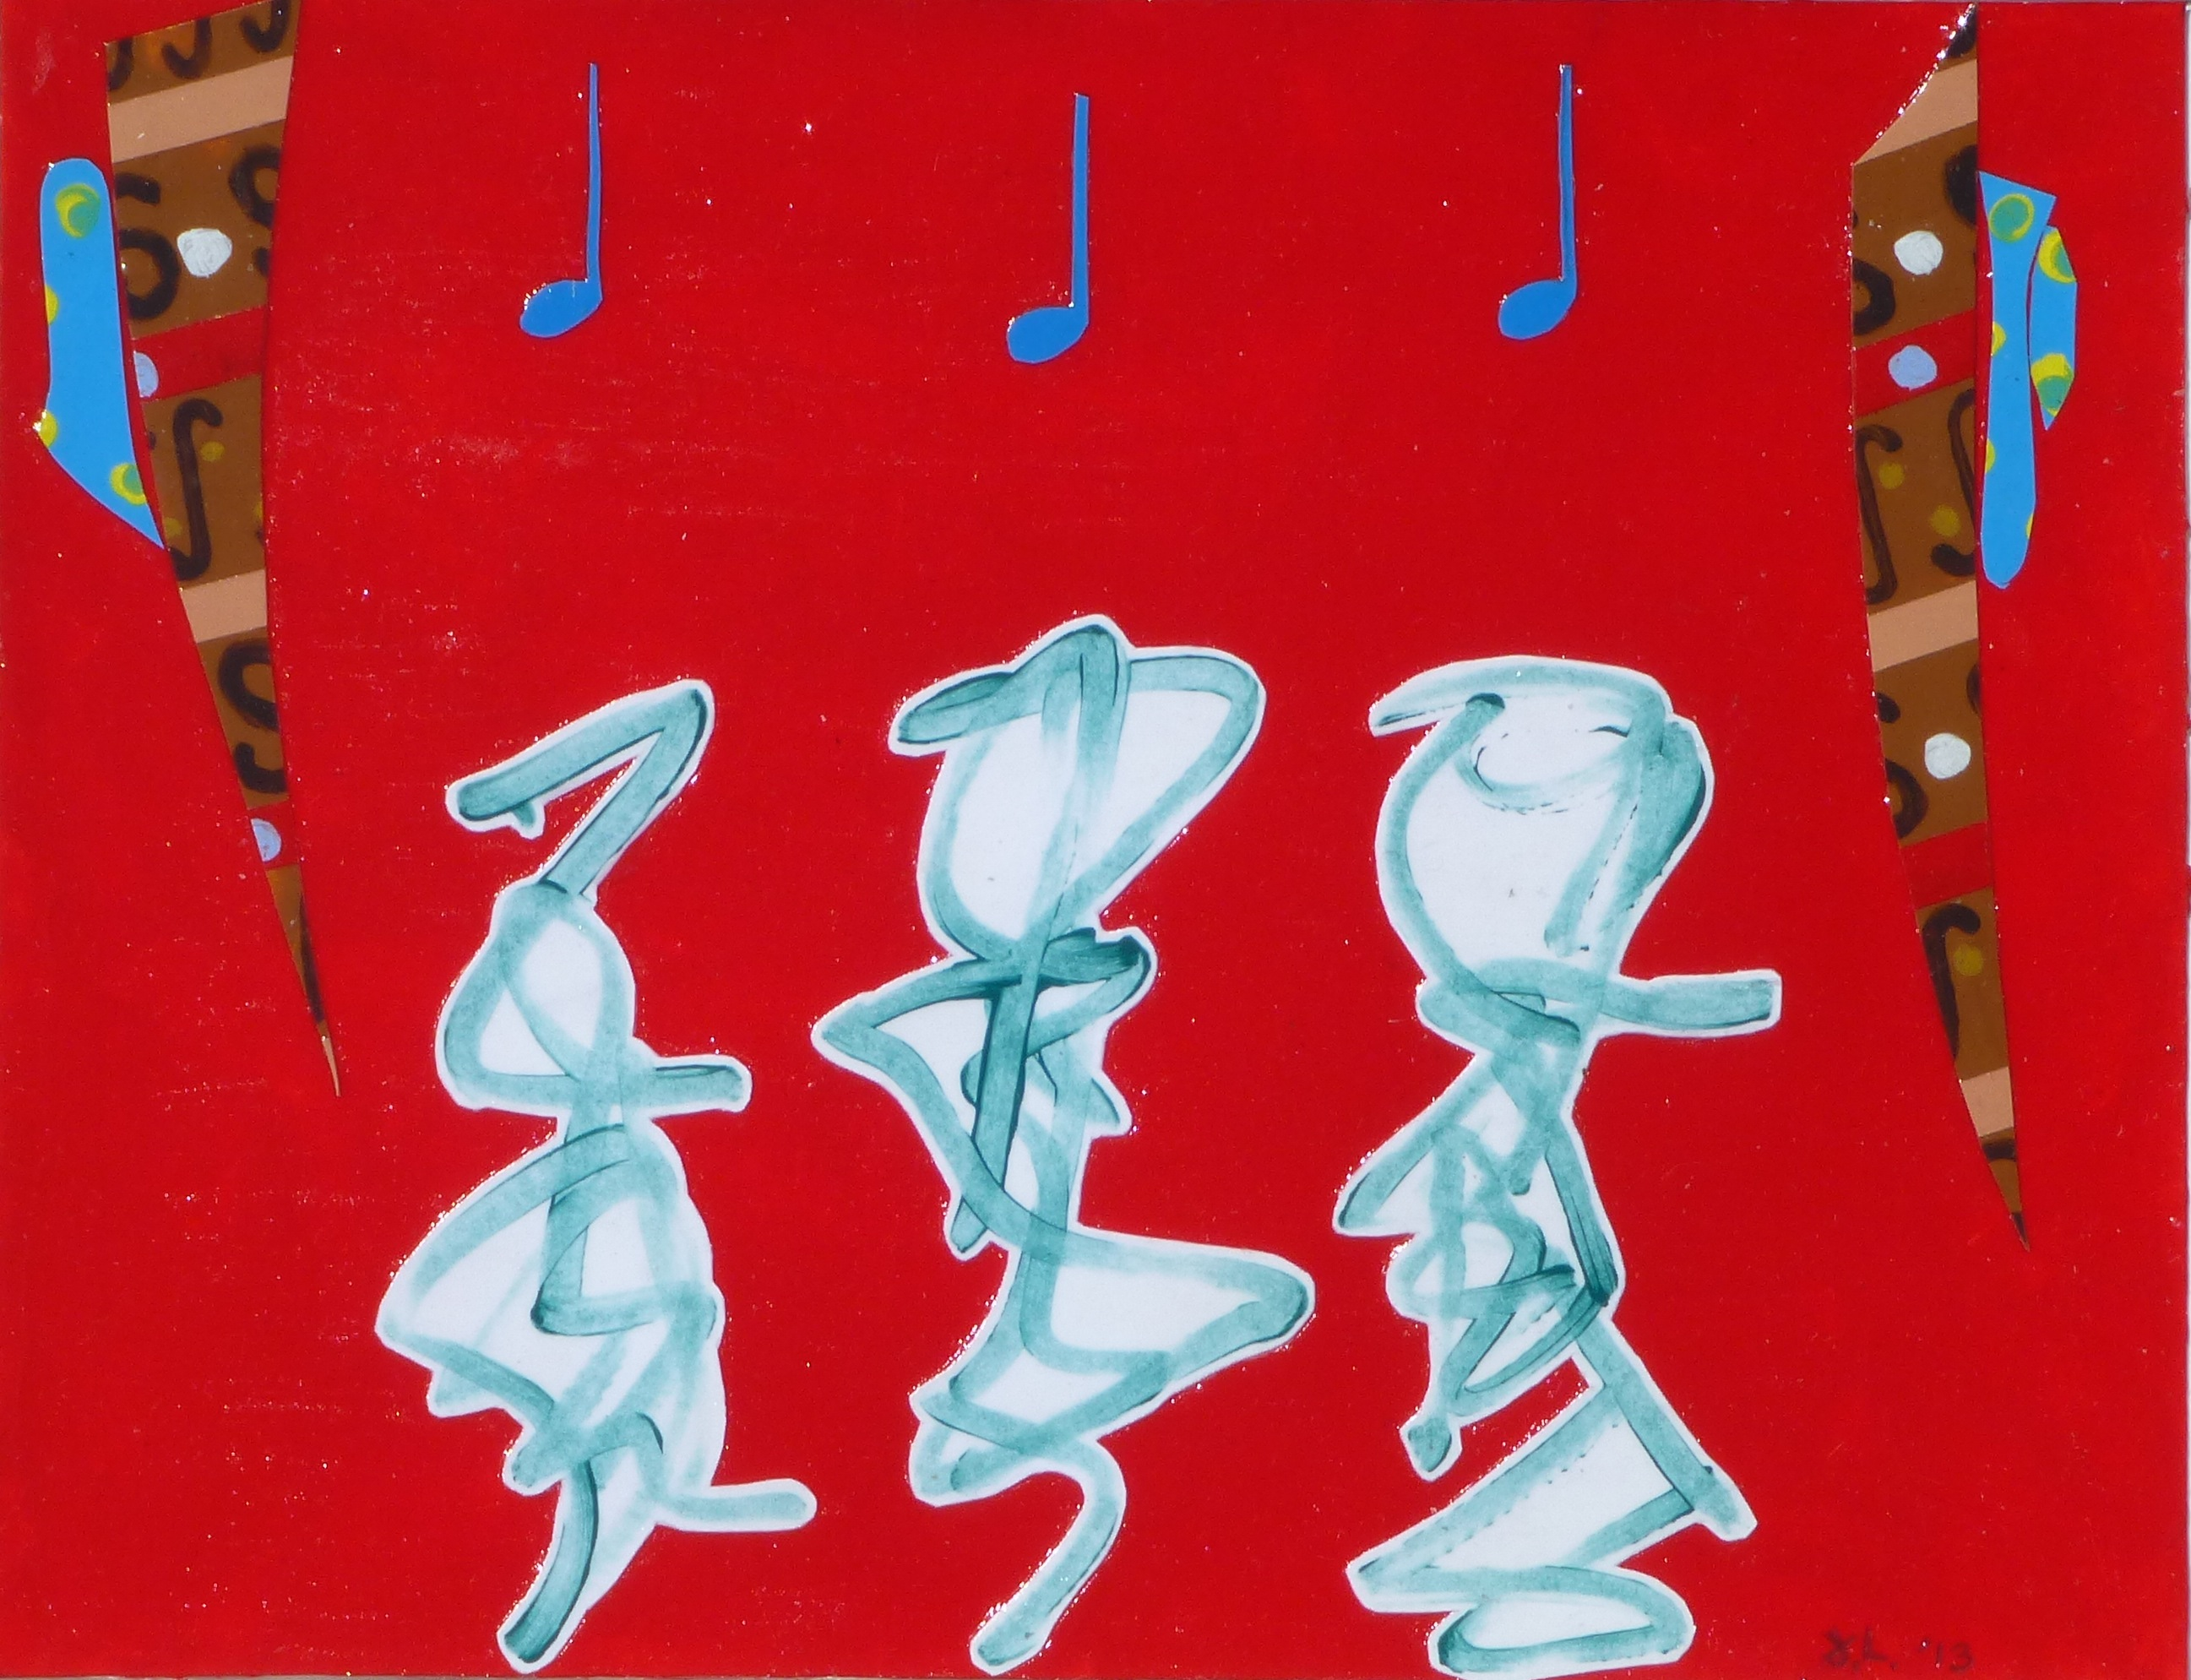 Dancing Figures with Red Sky